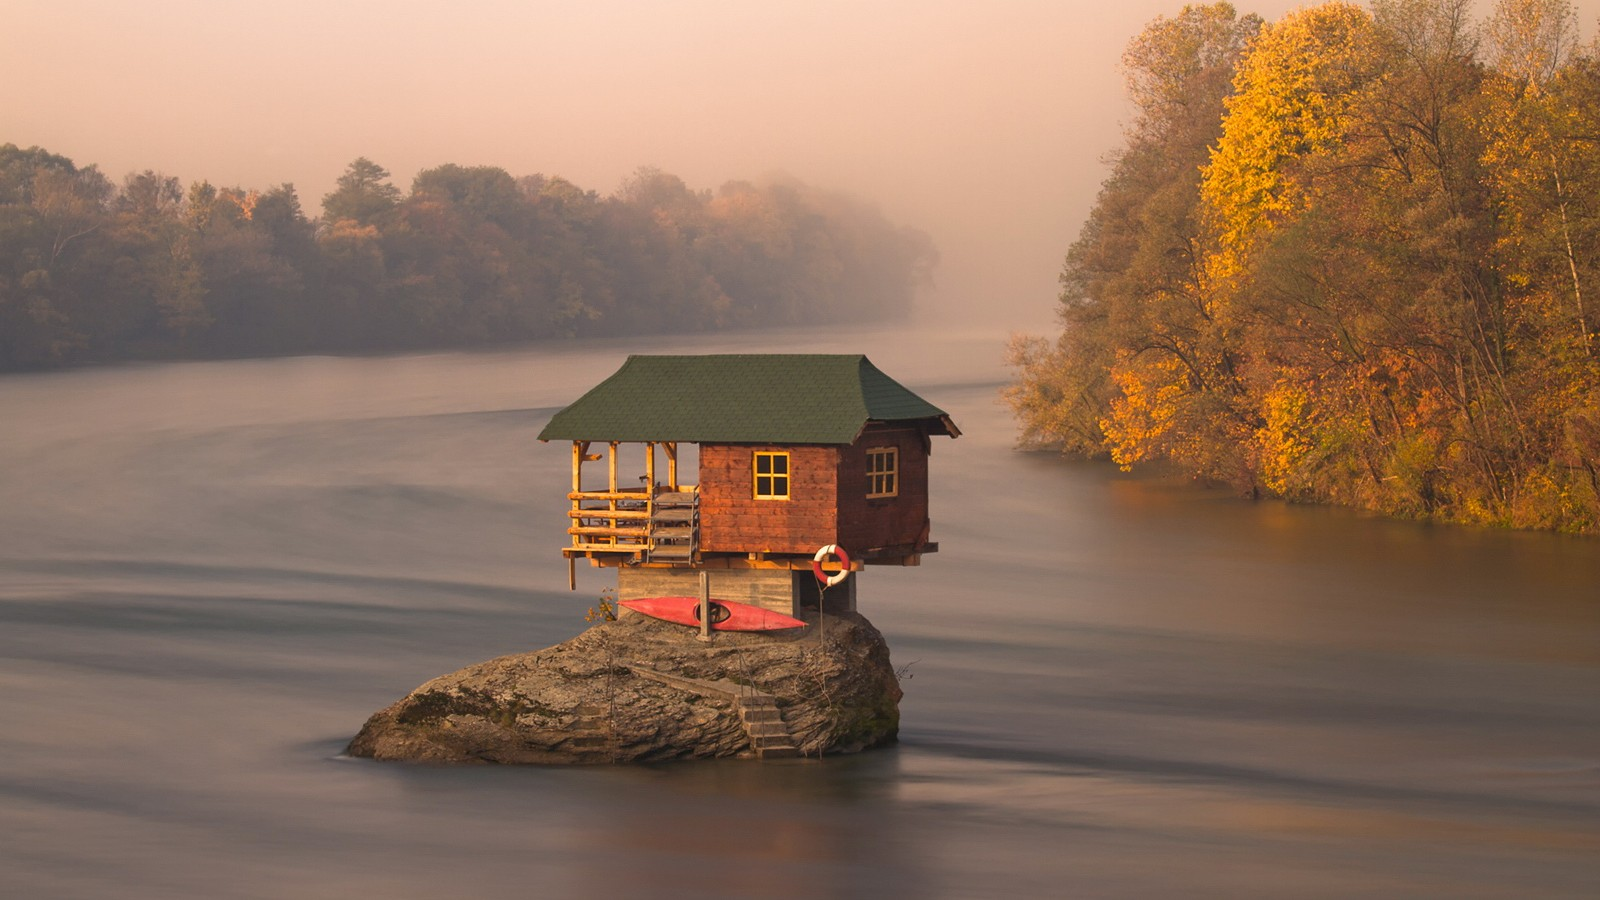 House On Rock In Water